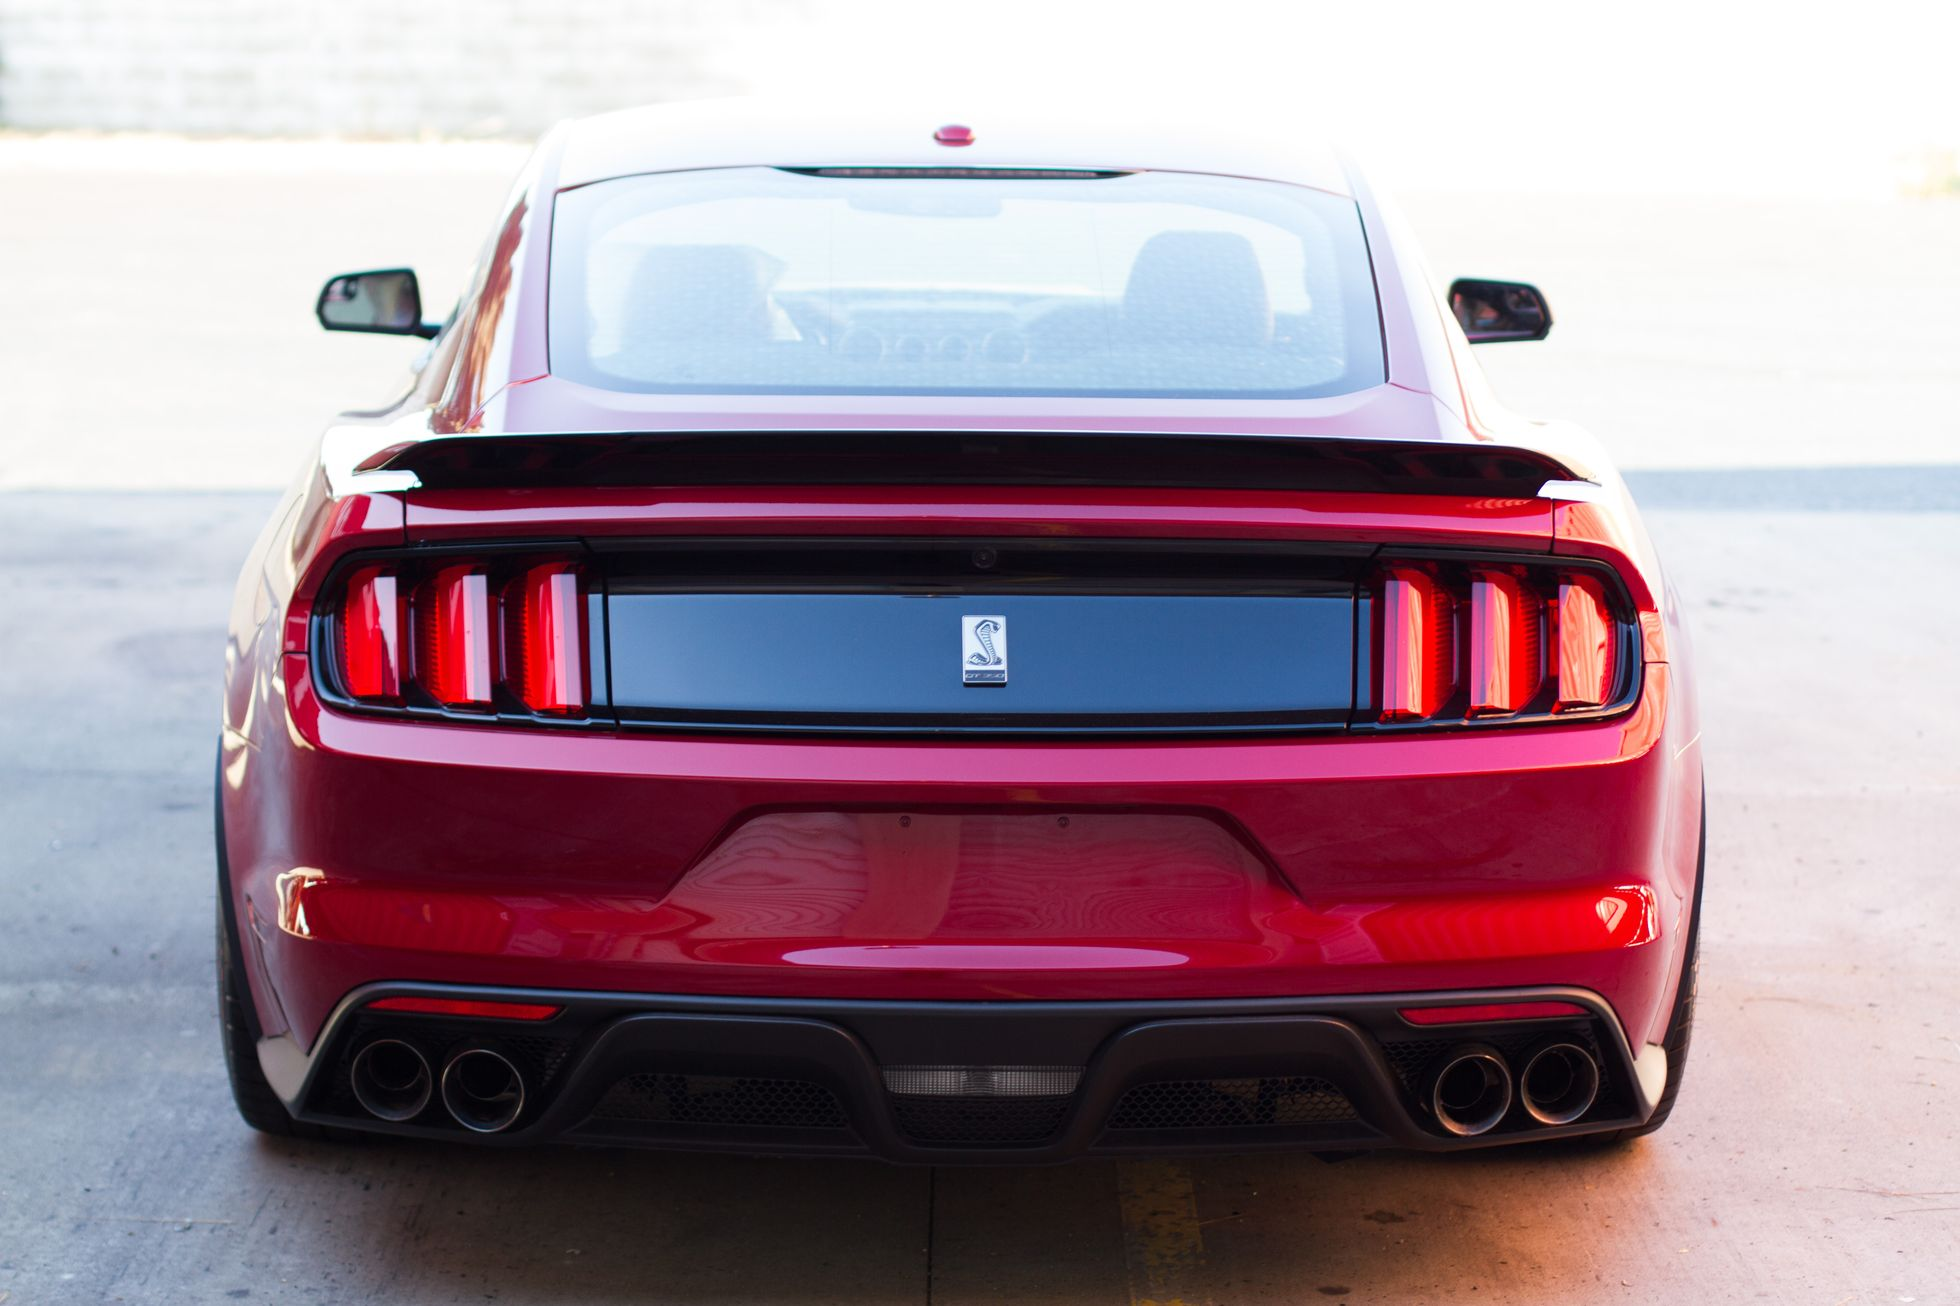 GT350 Shelby red new